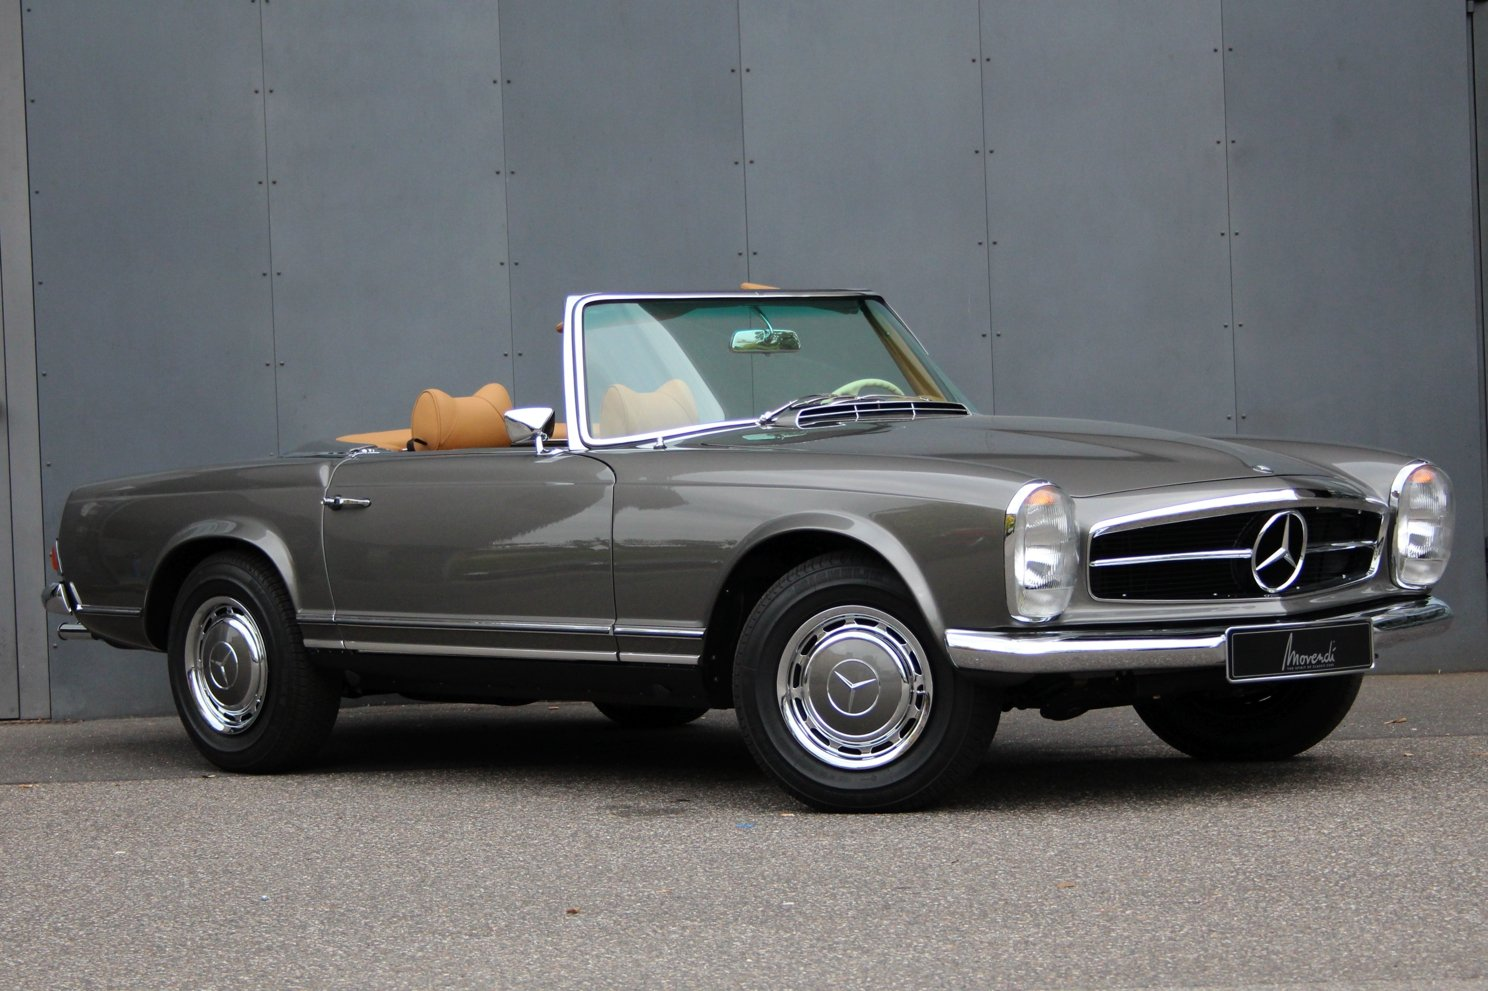 1971 Mercedes-Benz 280 SL Pagoda LHD For Sale (picture 1 of 6)